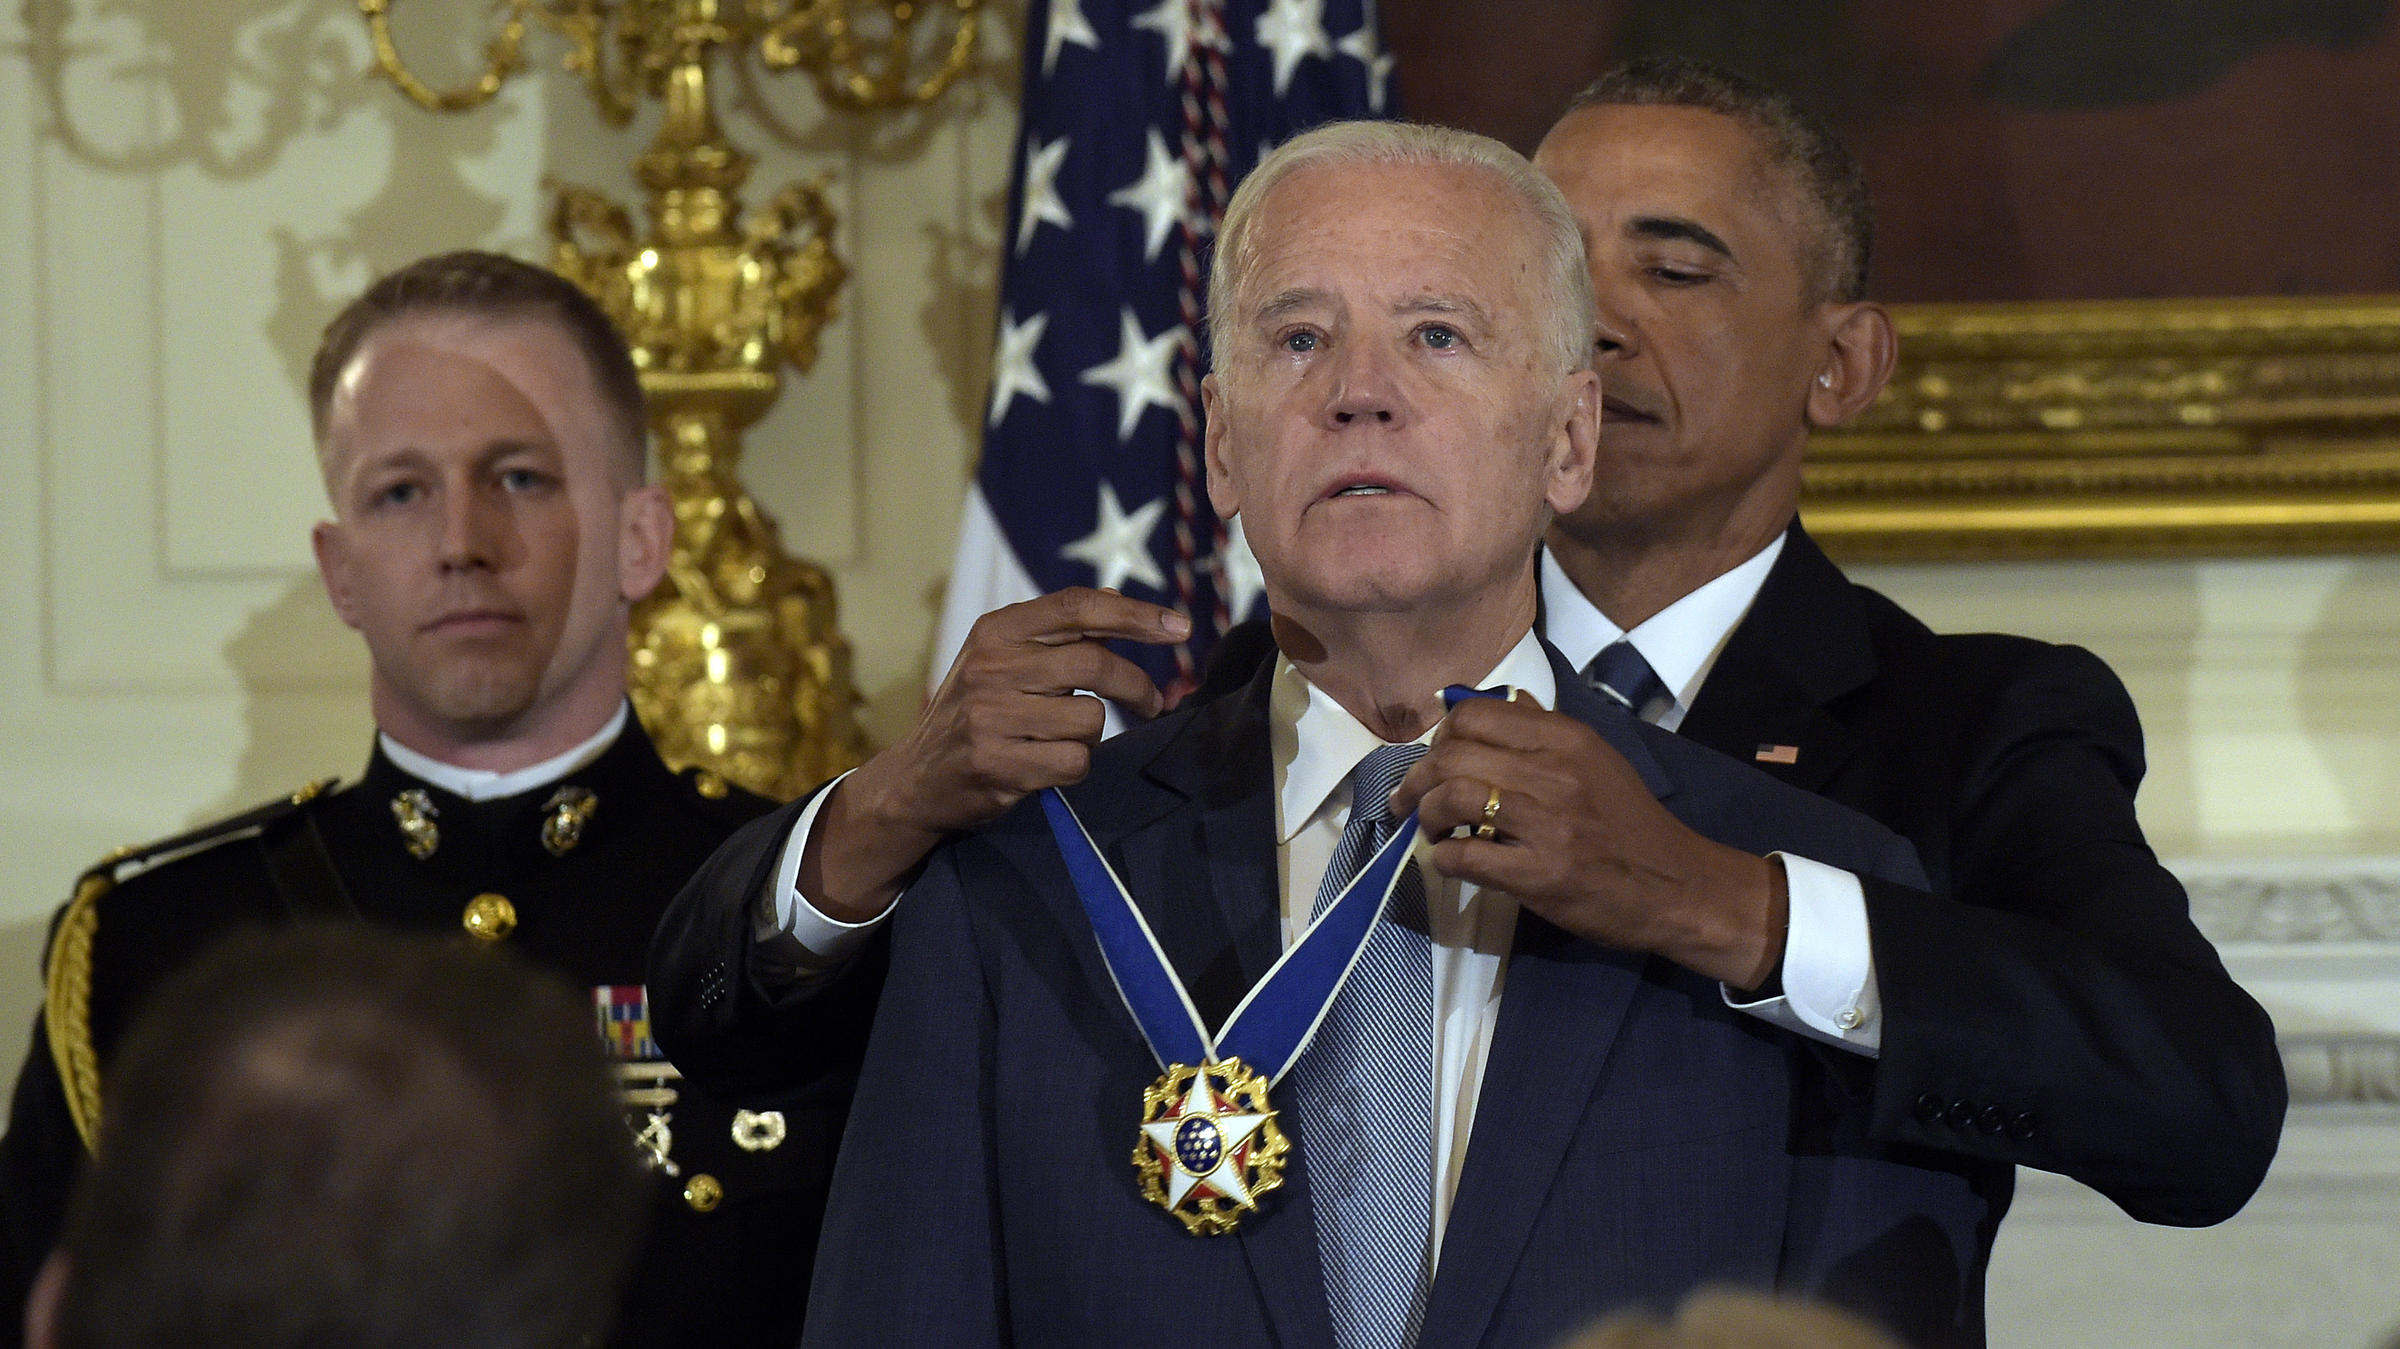 President Obama Presents A Teary Eyed Vice President Biden With The Presidential Medal Of Freedom At The White House On Thursday